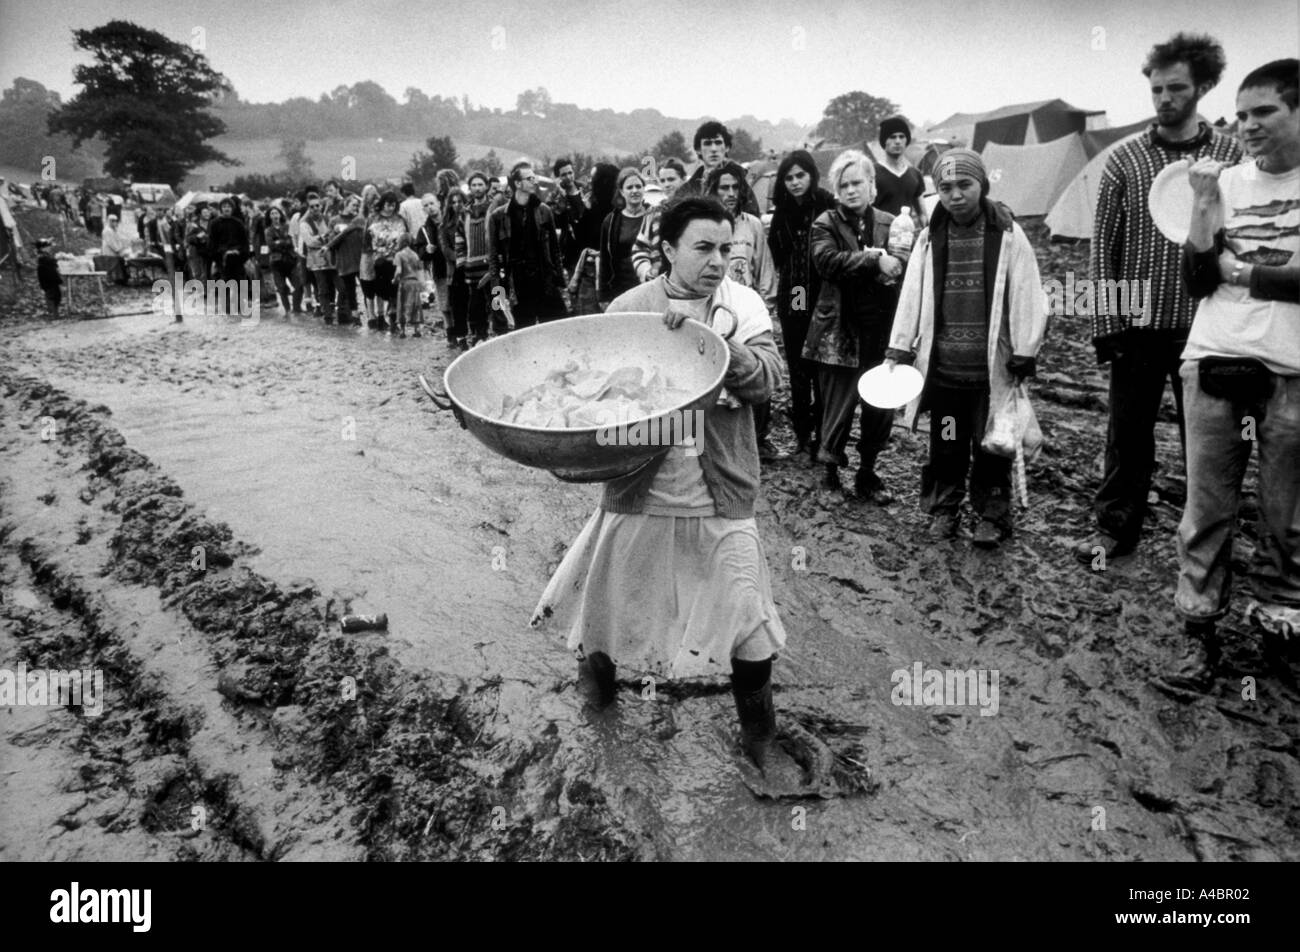 glastonbury hare krishna cook brings fresh popadoms to be given away free to the long queue 1997 - Stock Image